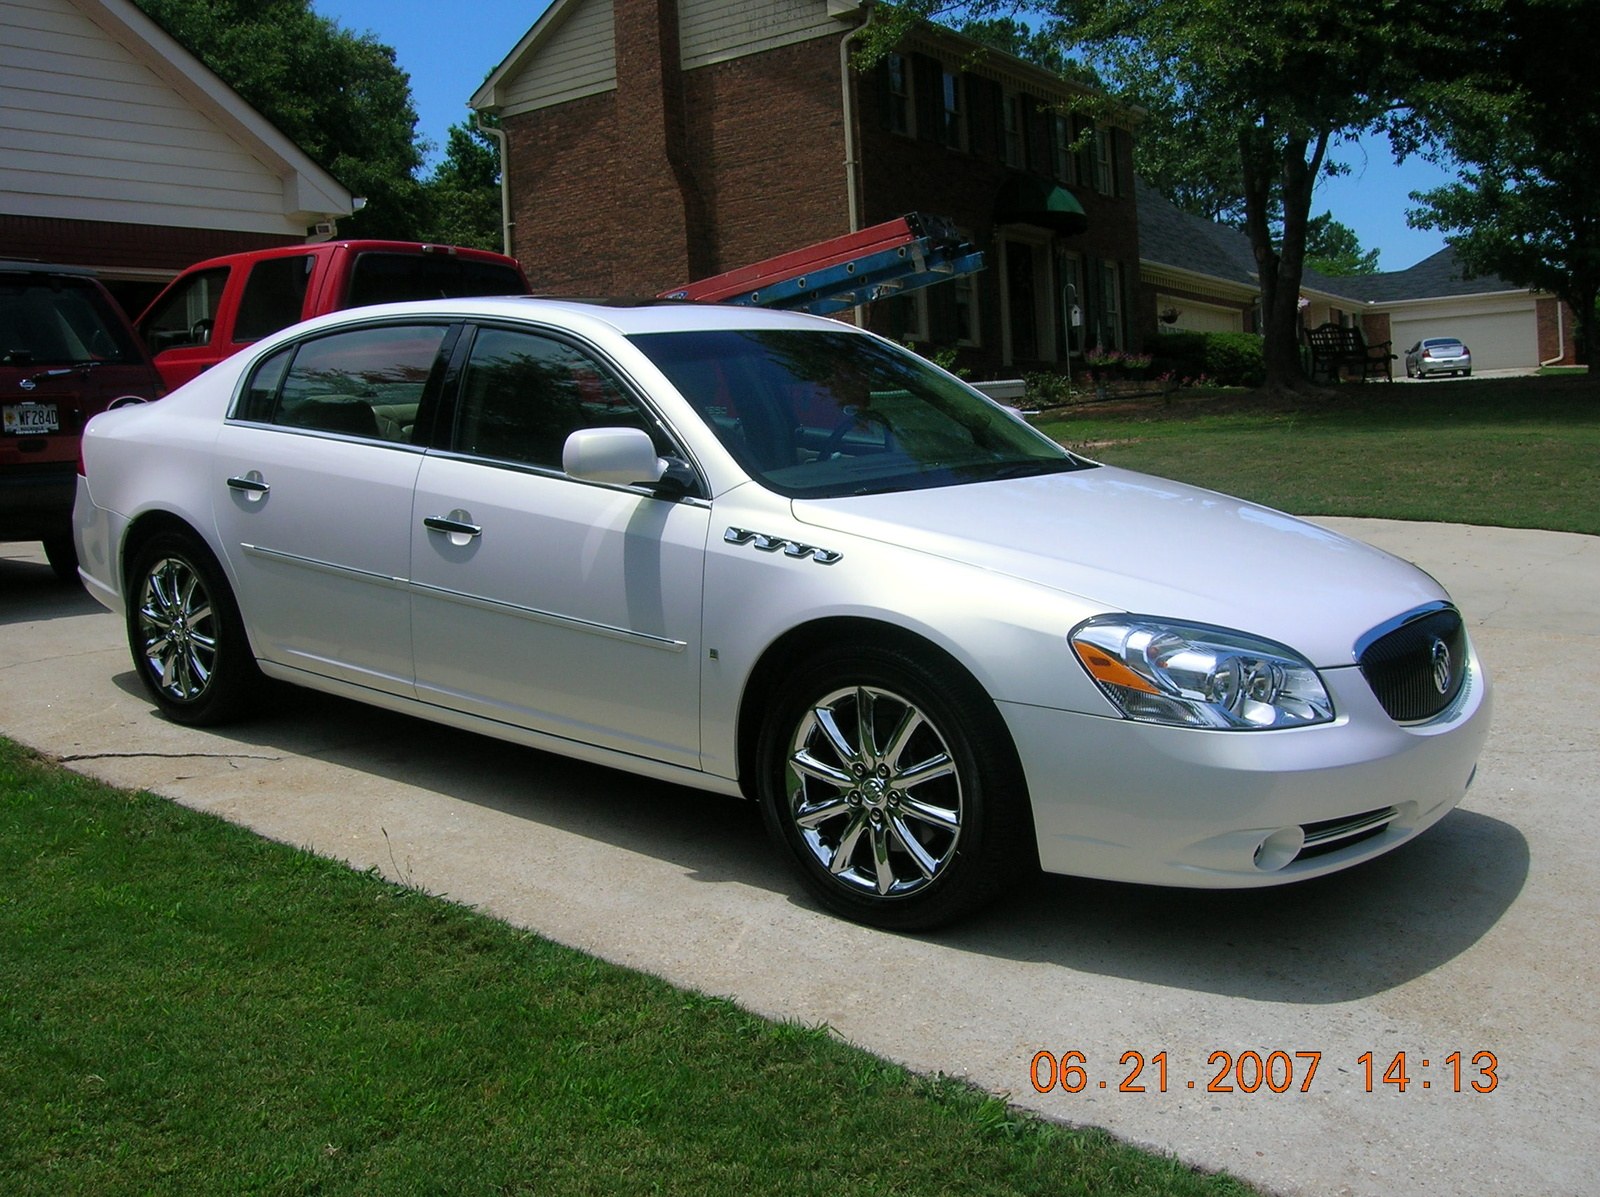 Oscar Insurance Reviews >> Buick Lesabre 2007: Review, Amazing Pictures and Images – Look at the car